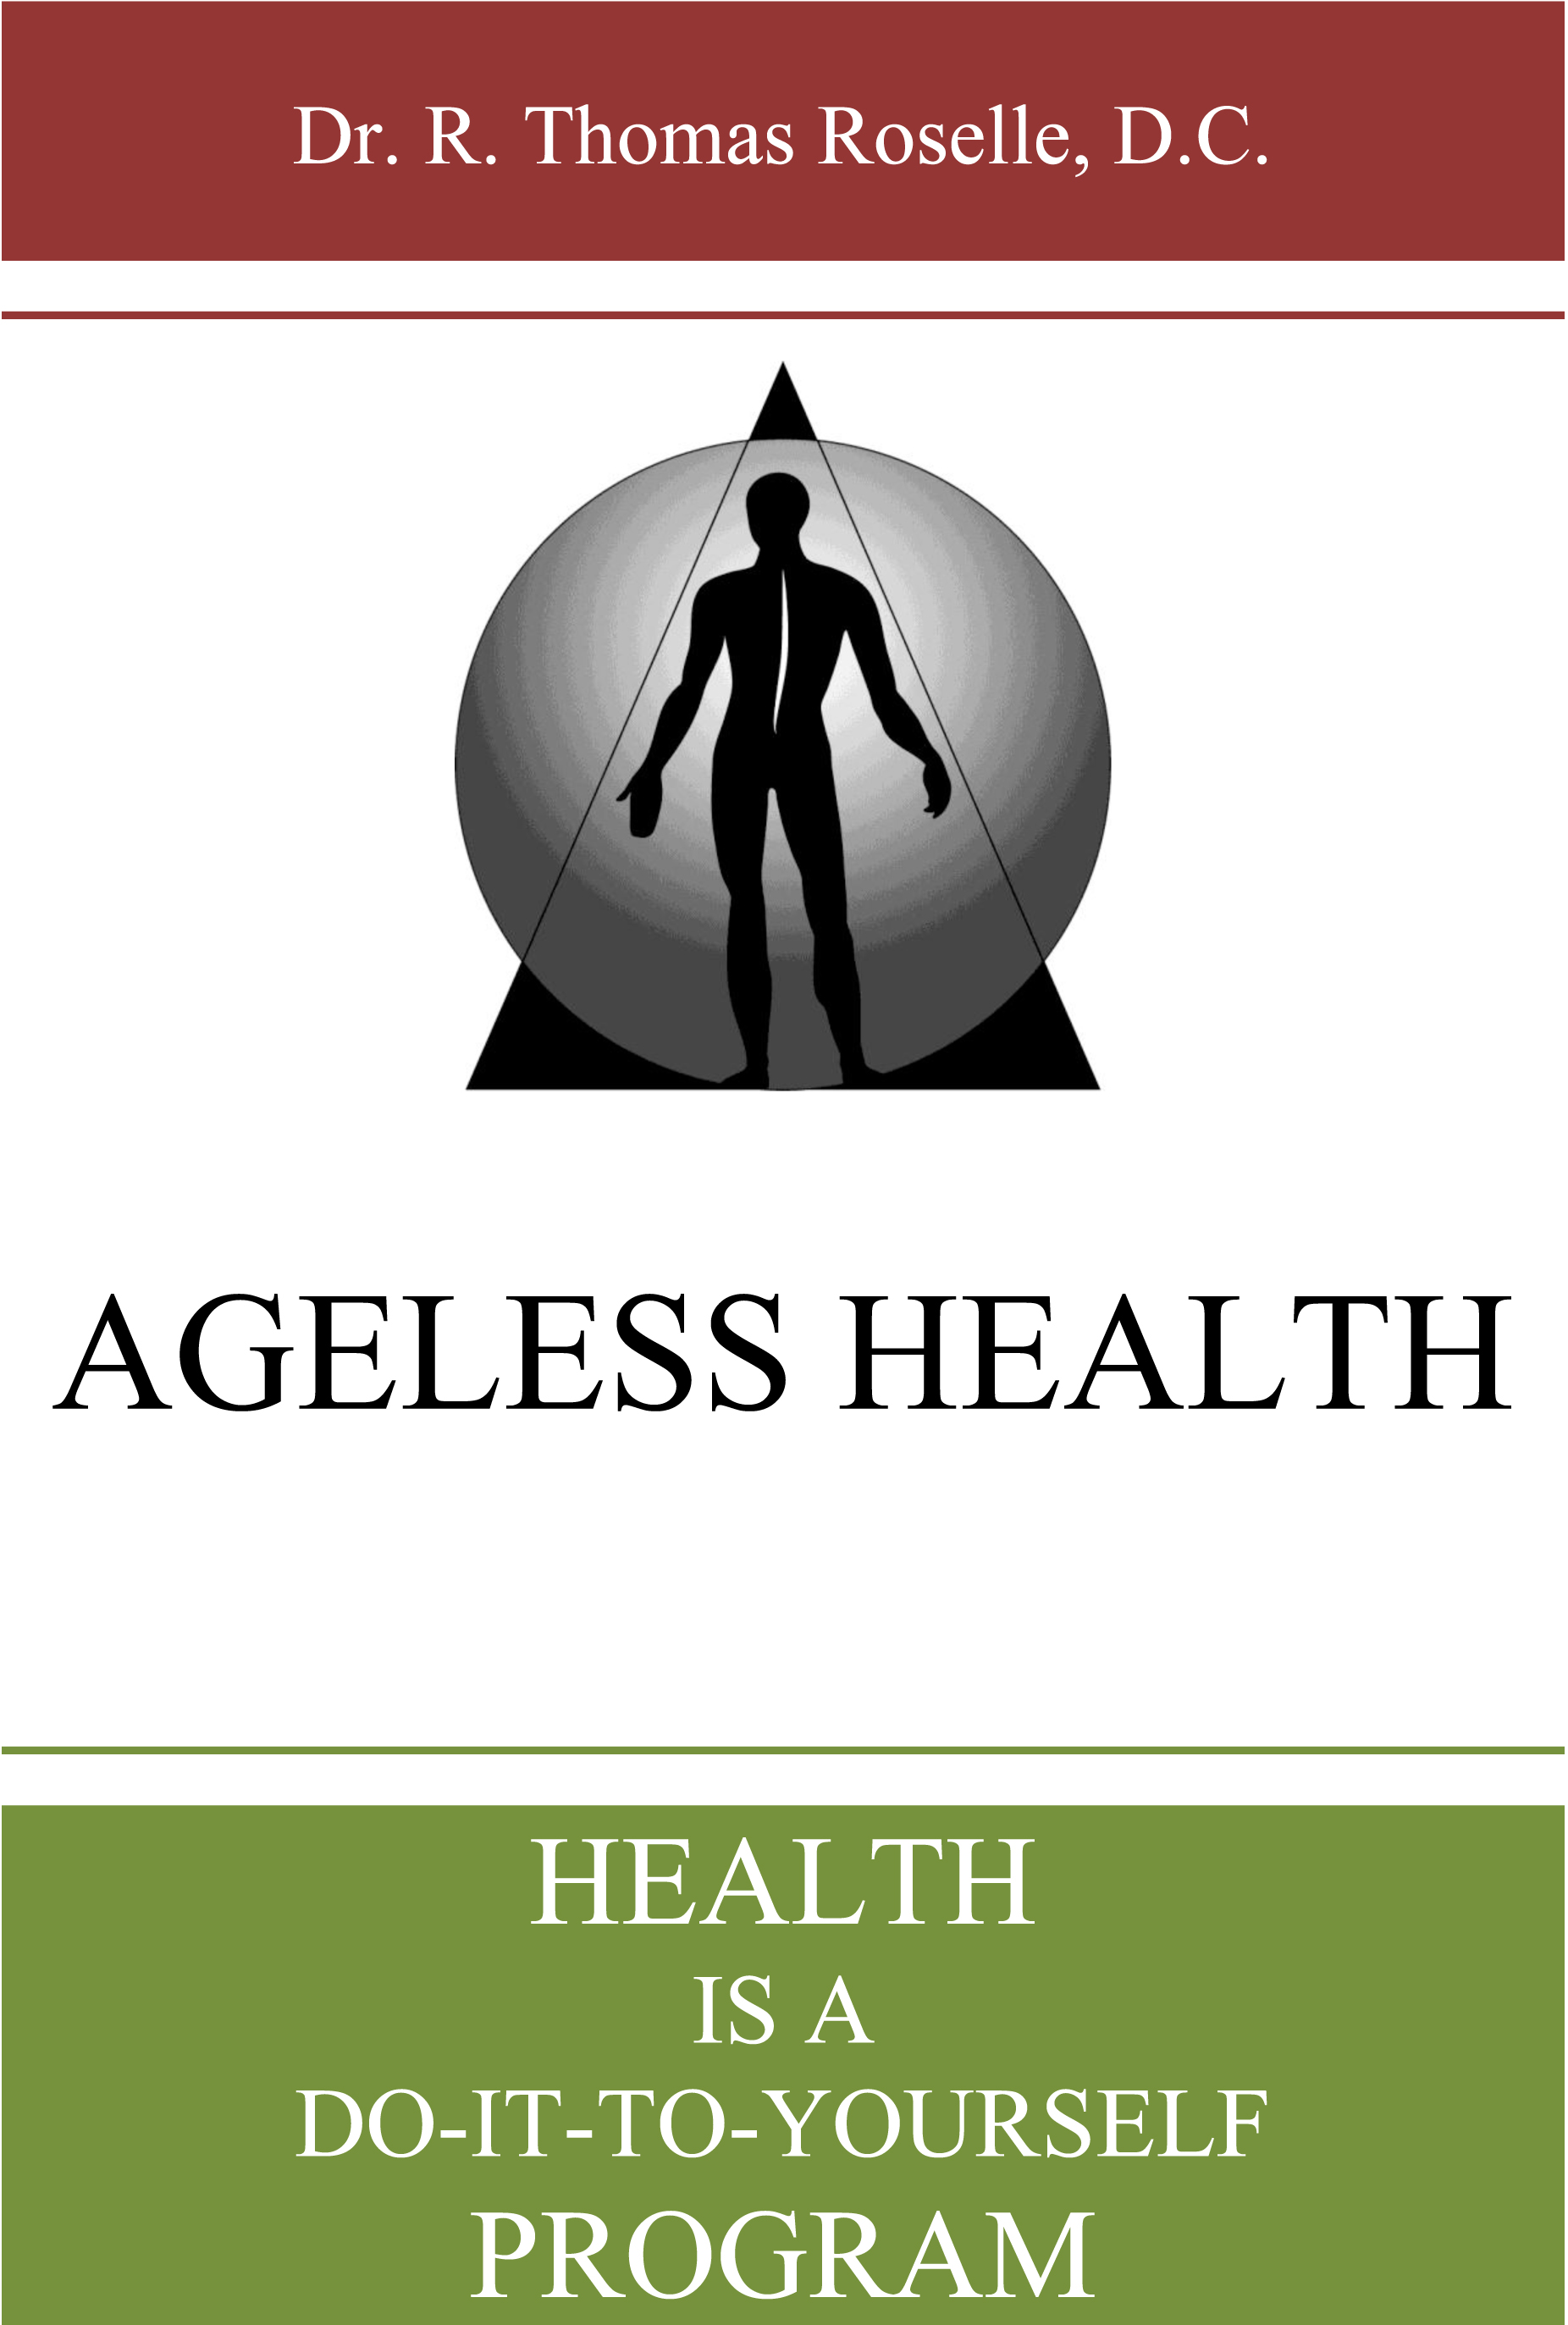 ageless health book cover